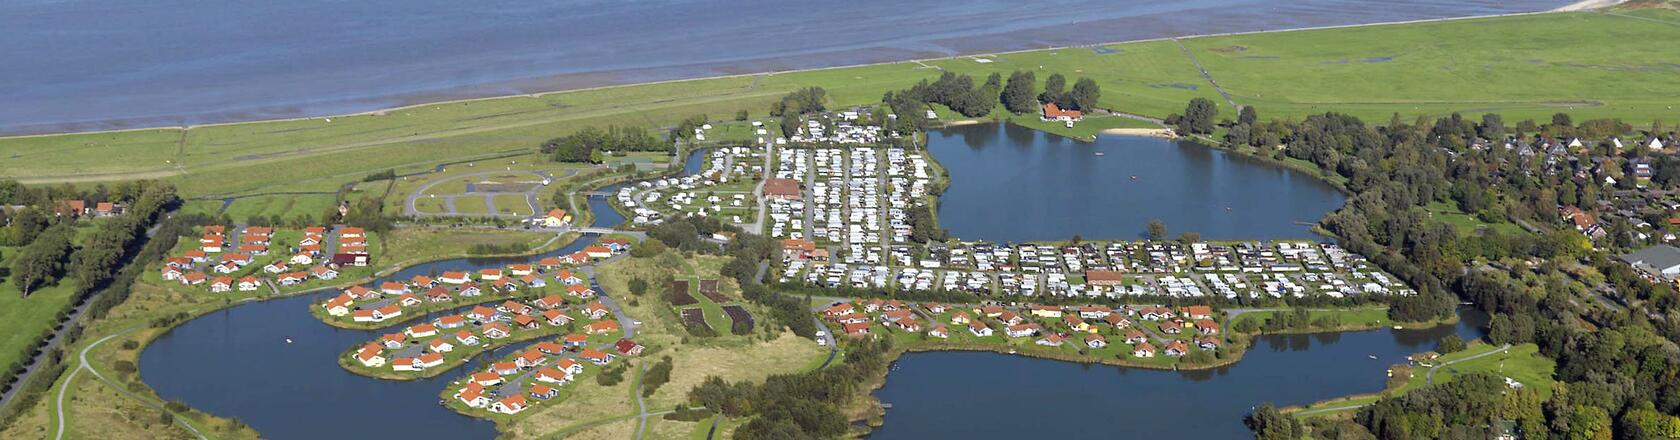 Otterndorf, Nordsee in Germany — Rent a holiday home with DanCenter